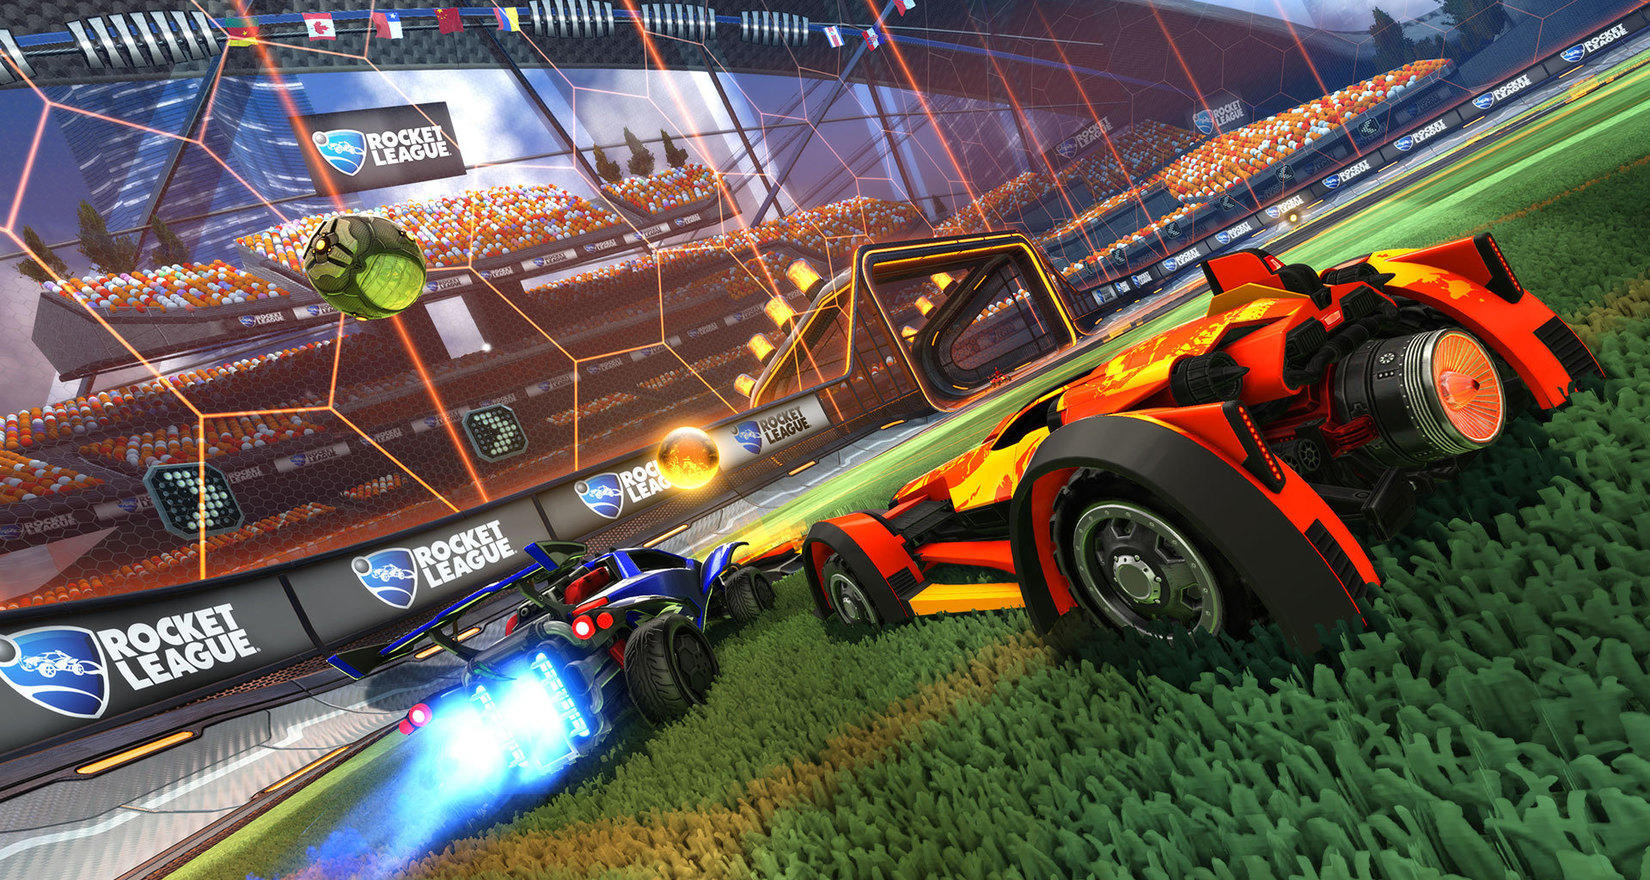 Full Cross-Platform play arrives in Rocket League.